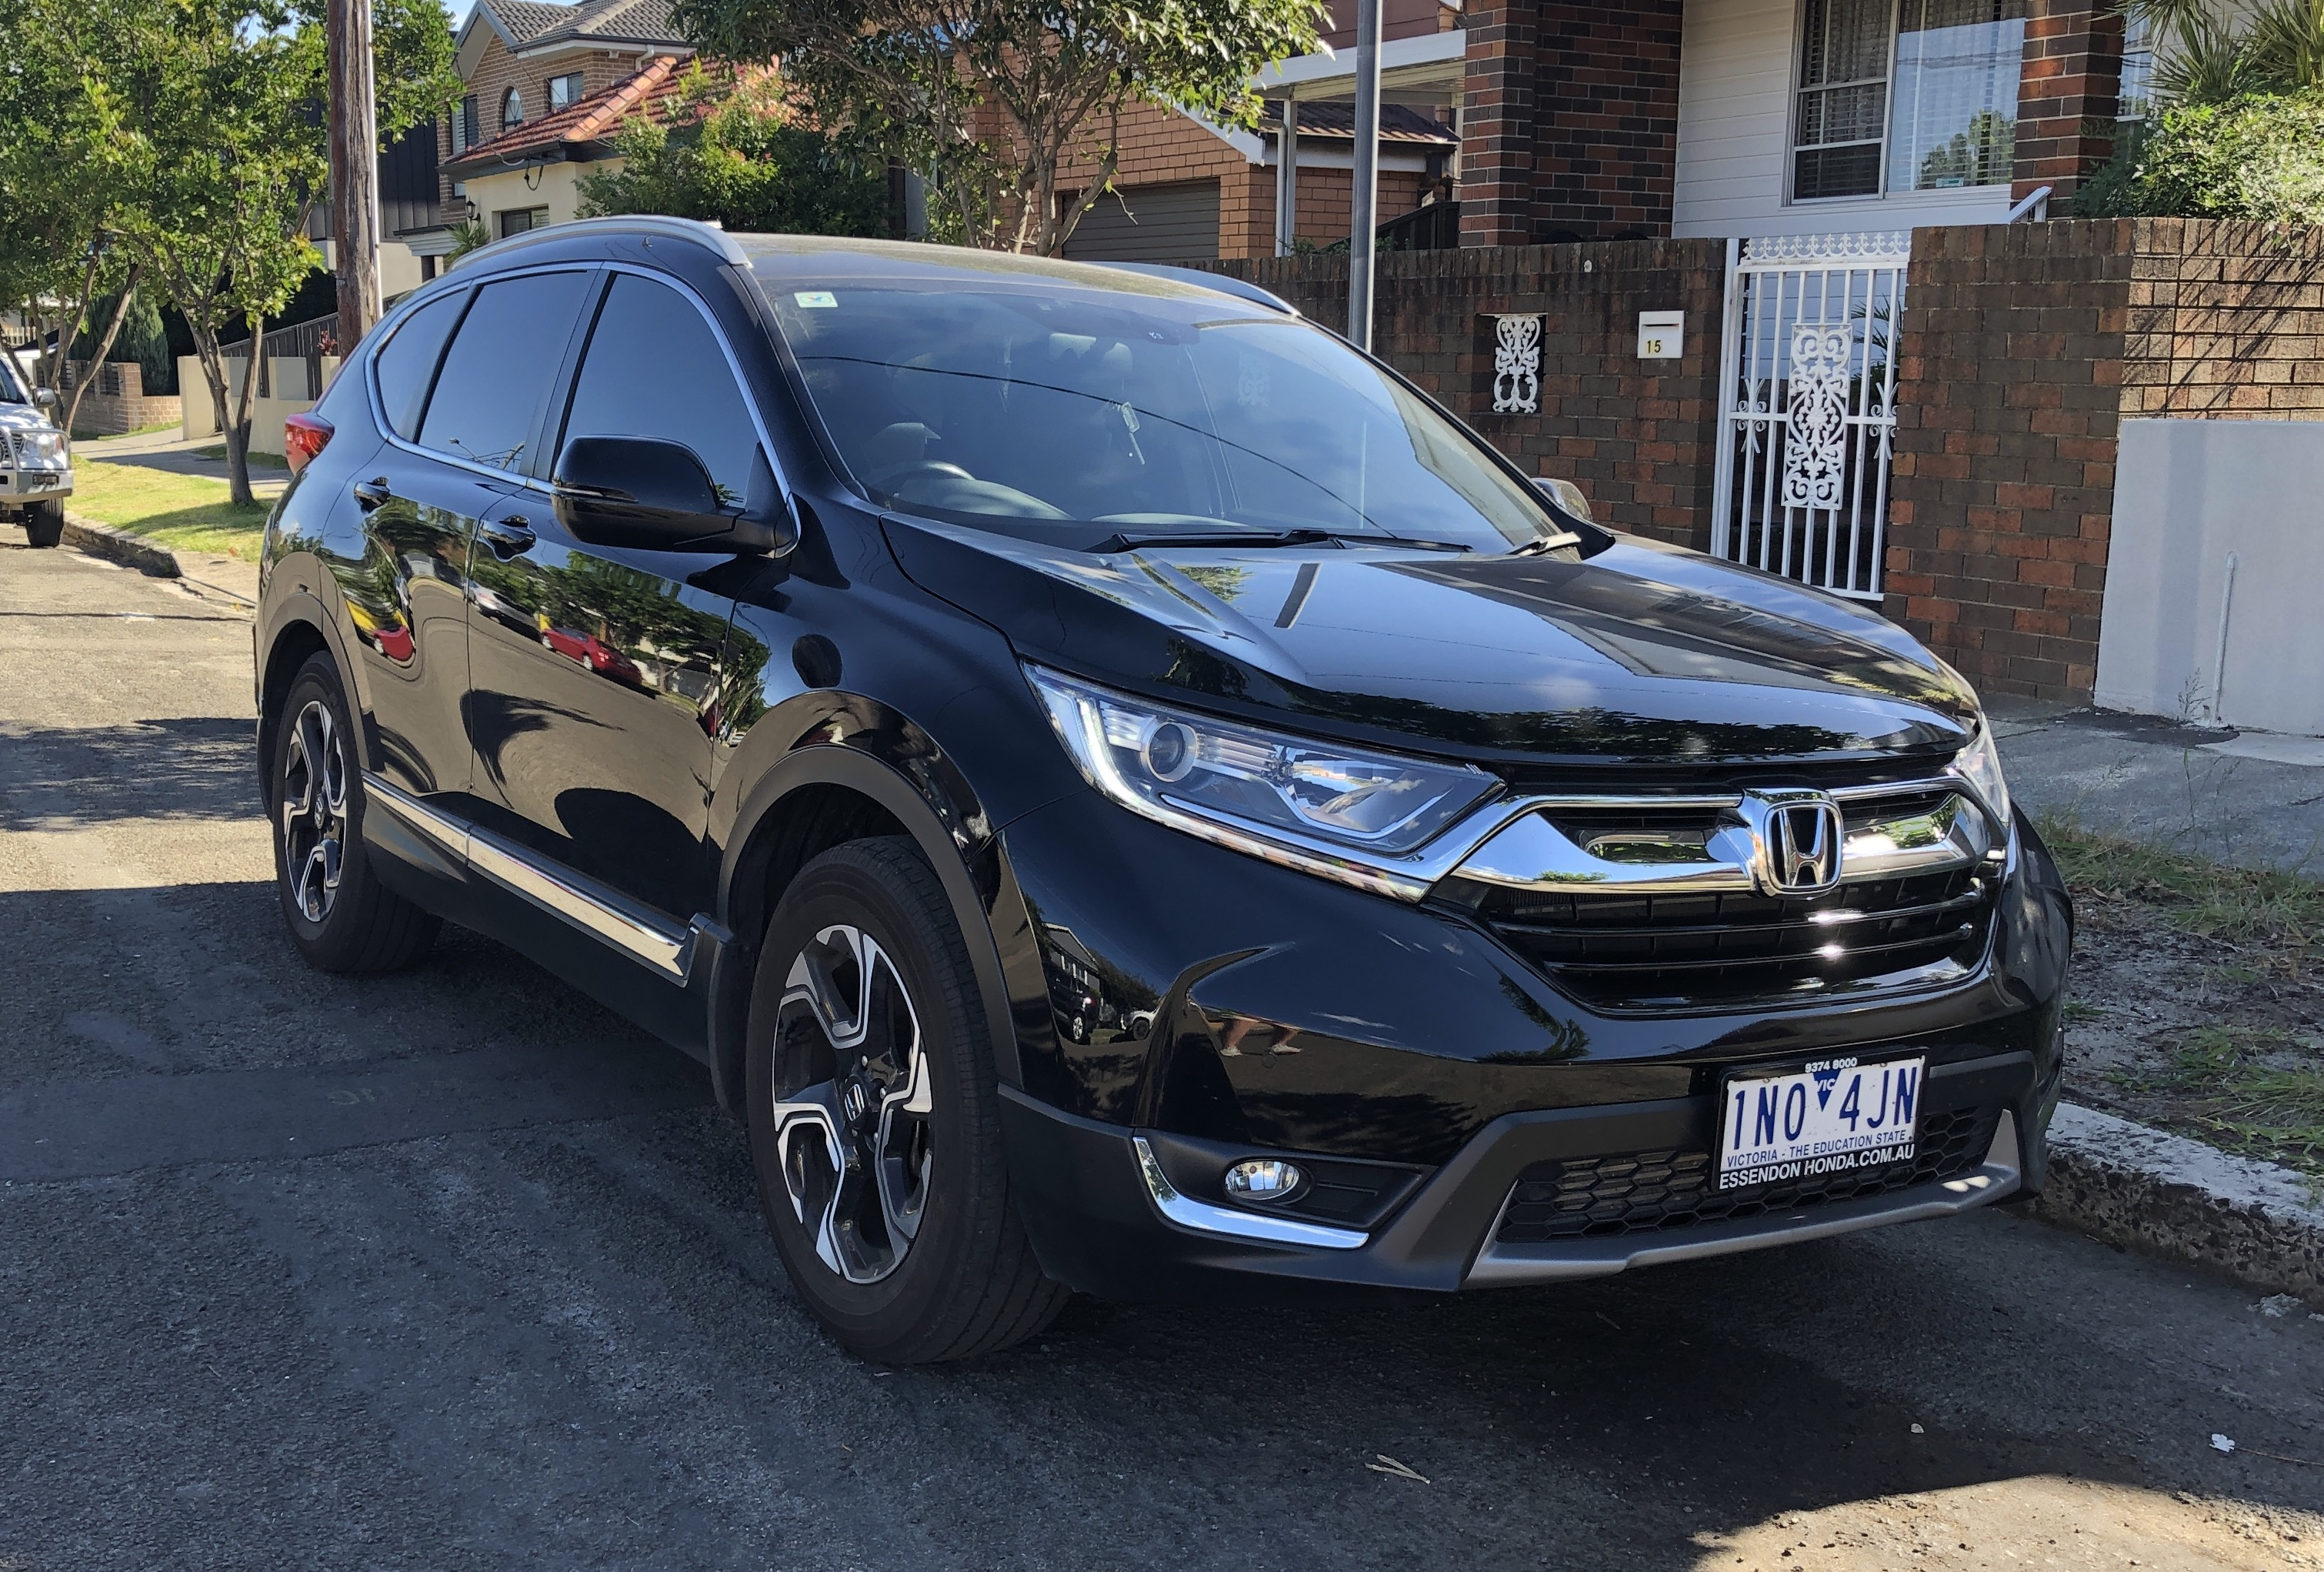 Picture of Soby's 2018 Honda CRV - 7 Seater